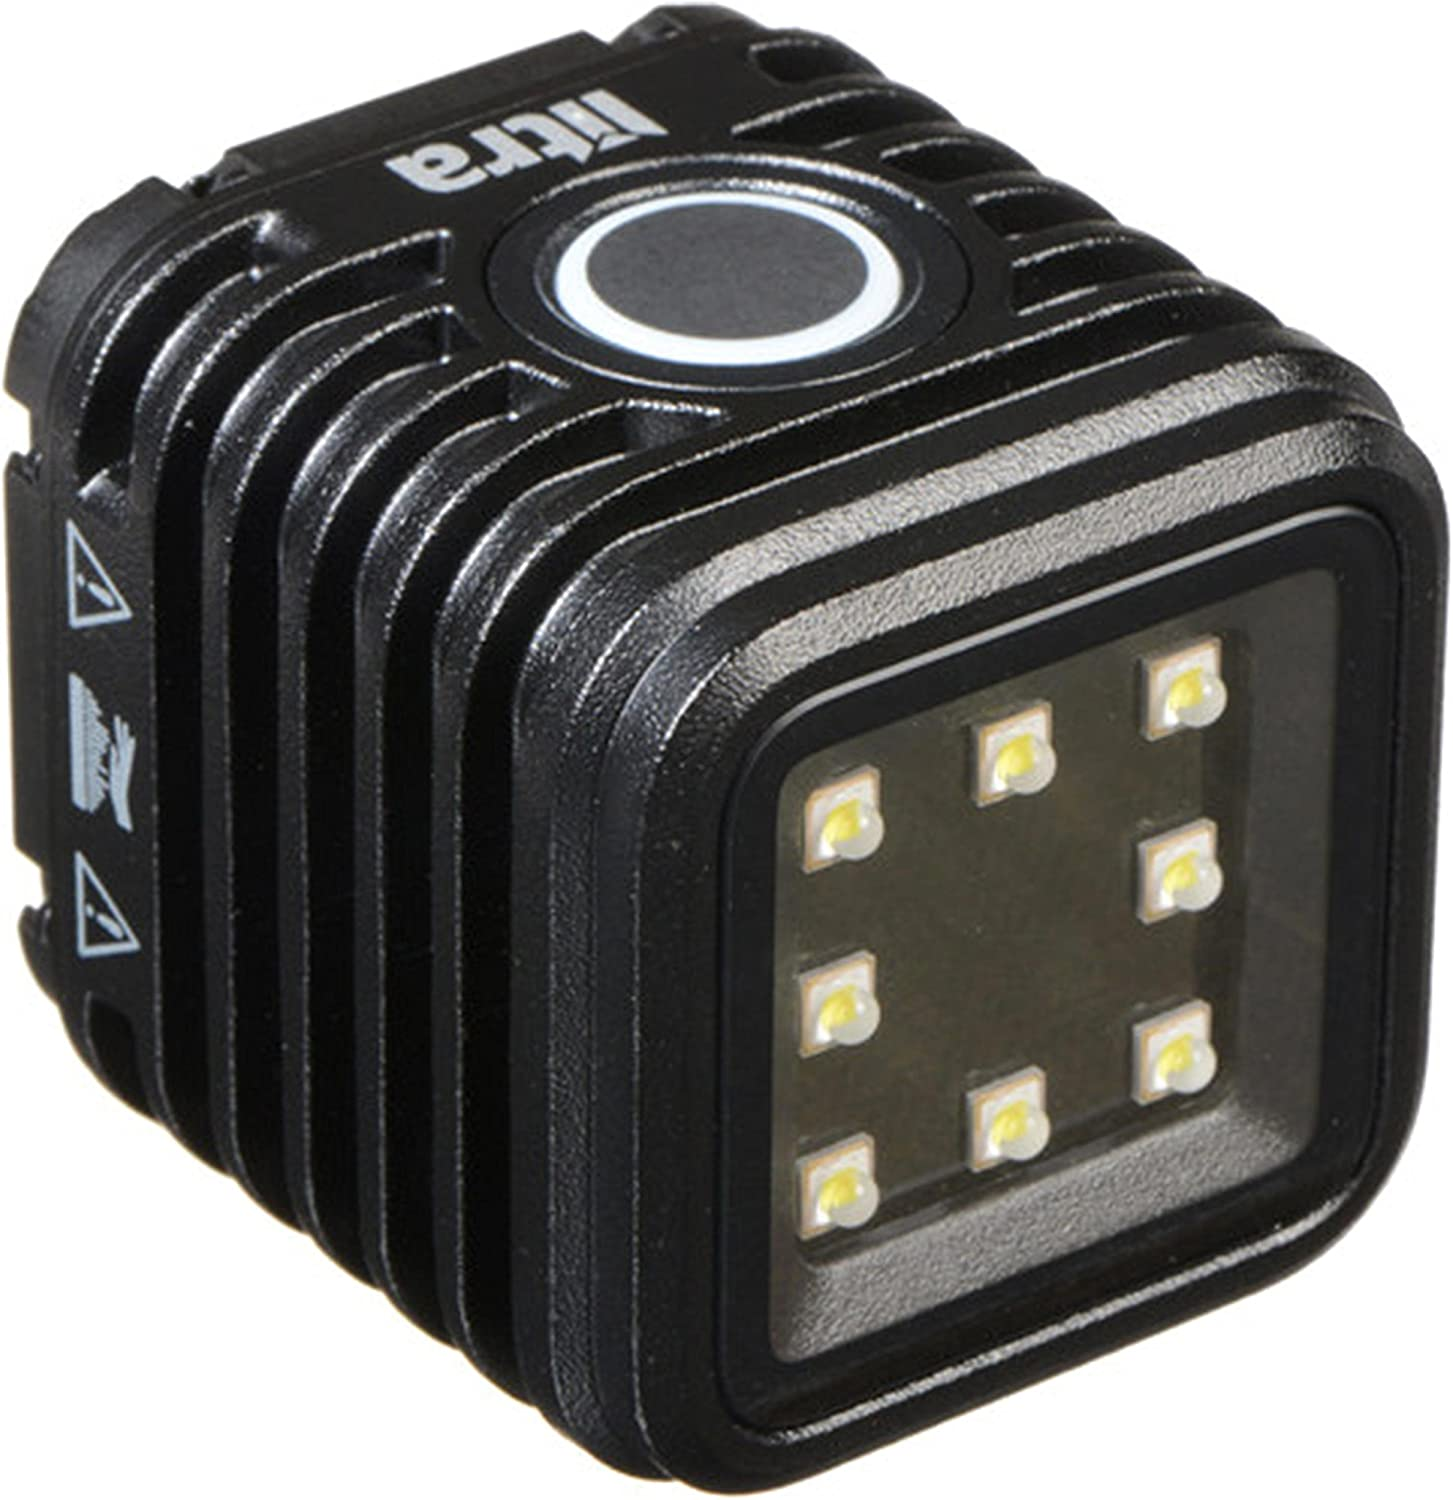 LitraTorch 2.0 Premium On-Camera Photo and Video Waterproof LED Light